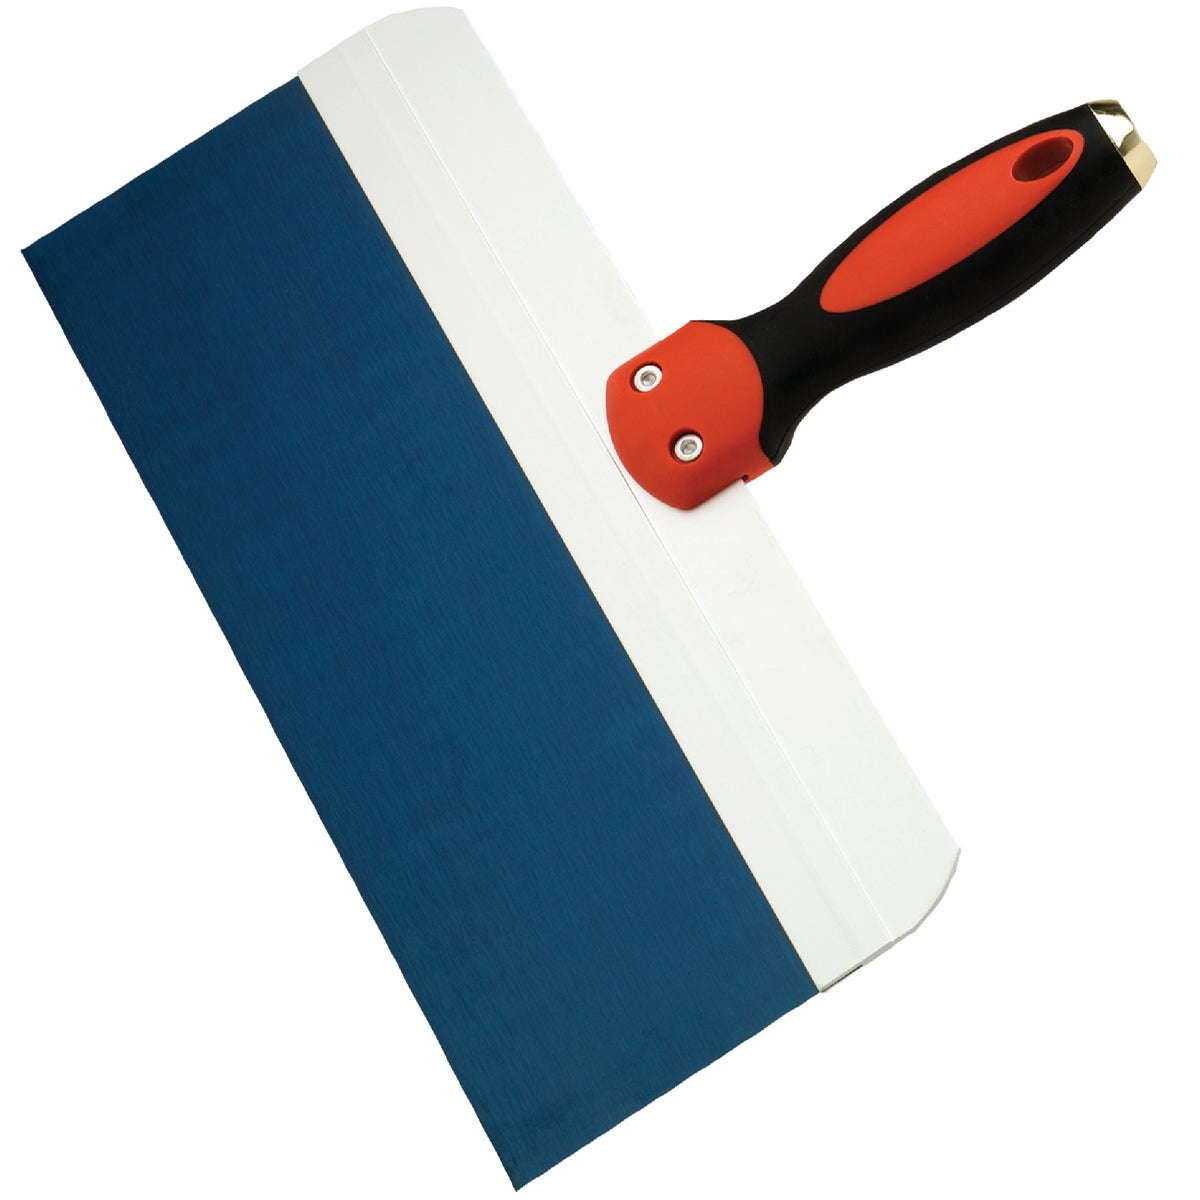 "12"" BLU STL TAPING KNIFE - 323108 by Do it Best"